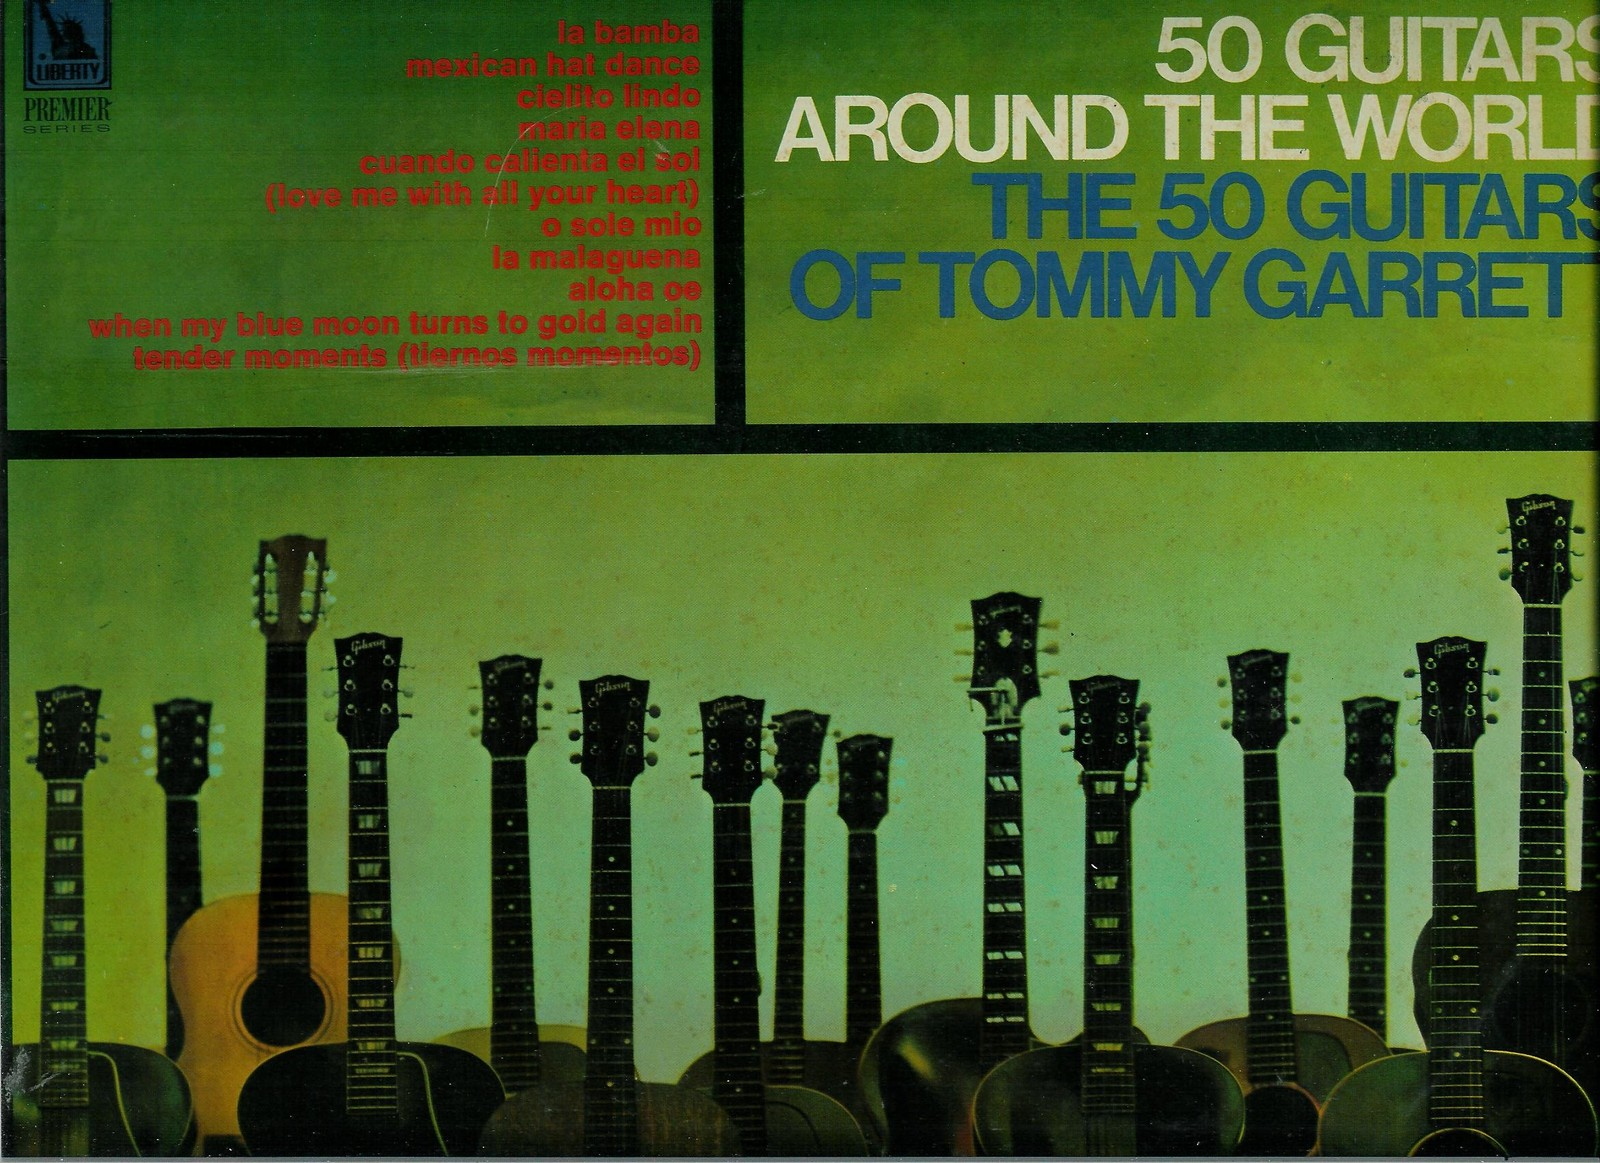 Primary image for THE 50 GUITARS OF TOMMY GARRETT  * 50 GUITARS AROUND THE WROLD *  LP